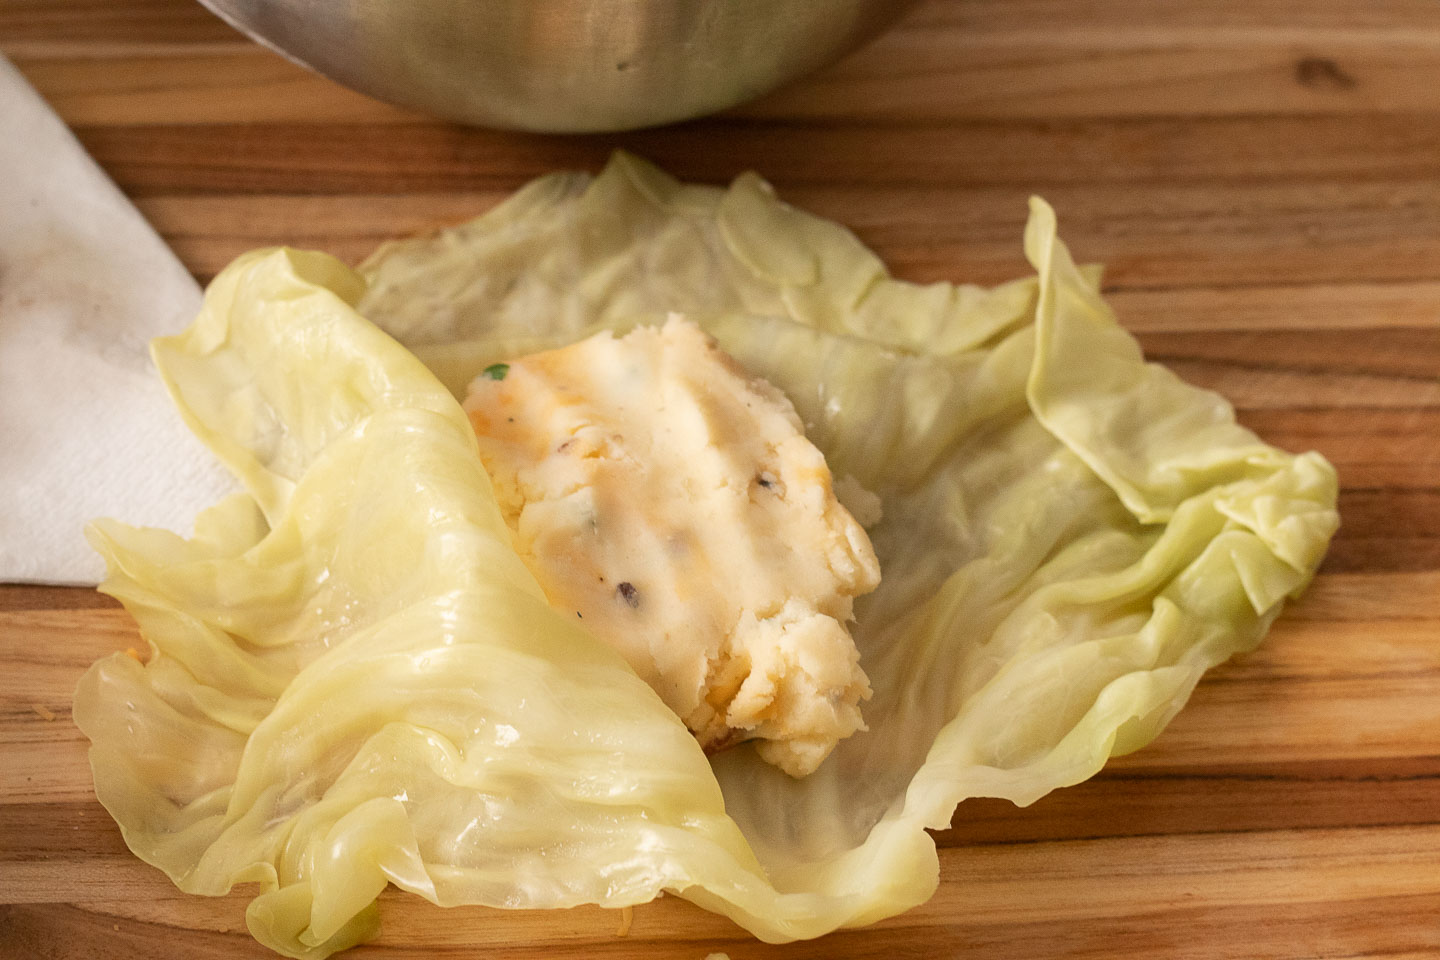 cabbage leaf with loaded mashed potato mixture